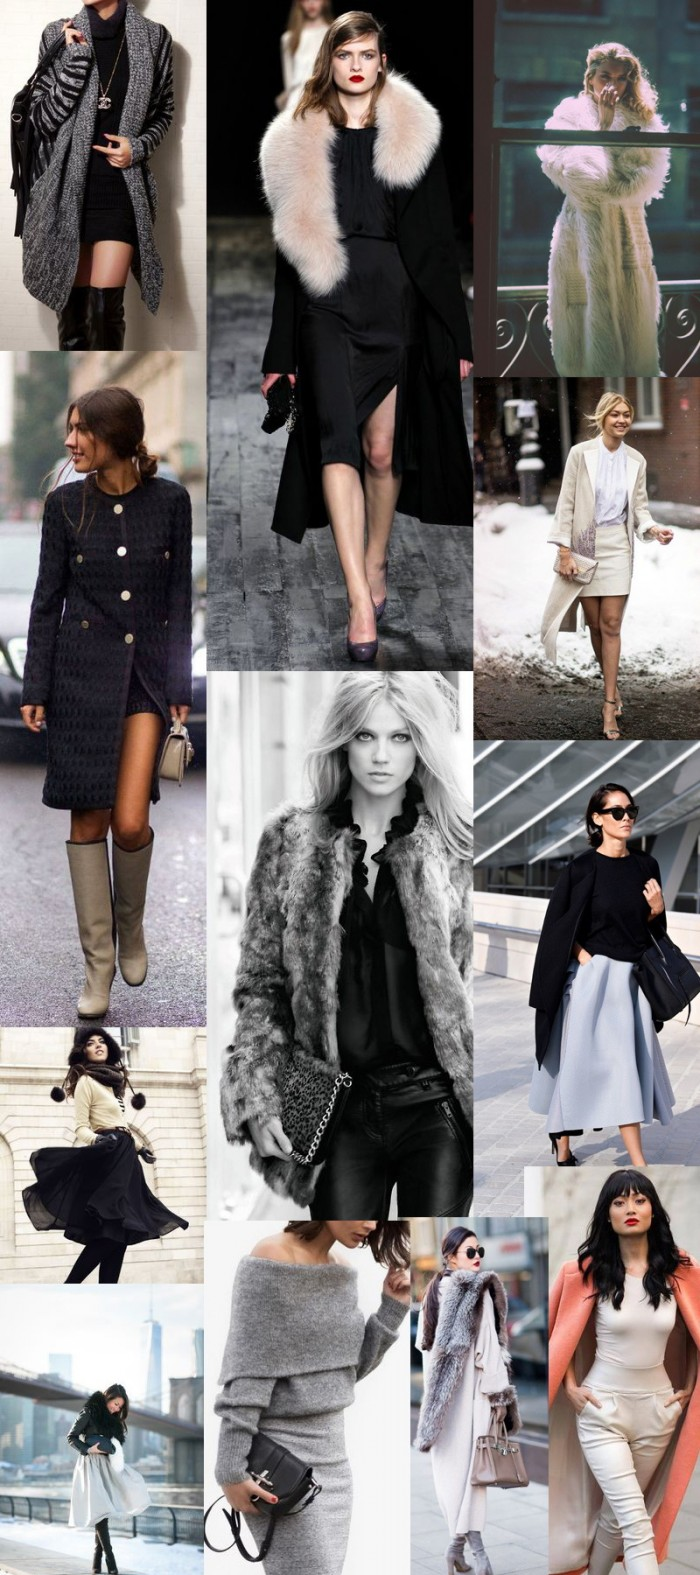 4 Winter-Party-Outfit-Ideas-For-Women-5-700x1575.jpg